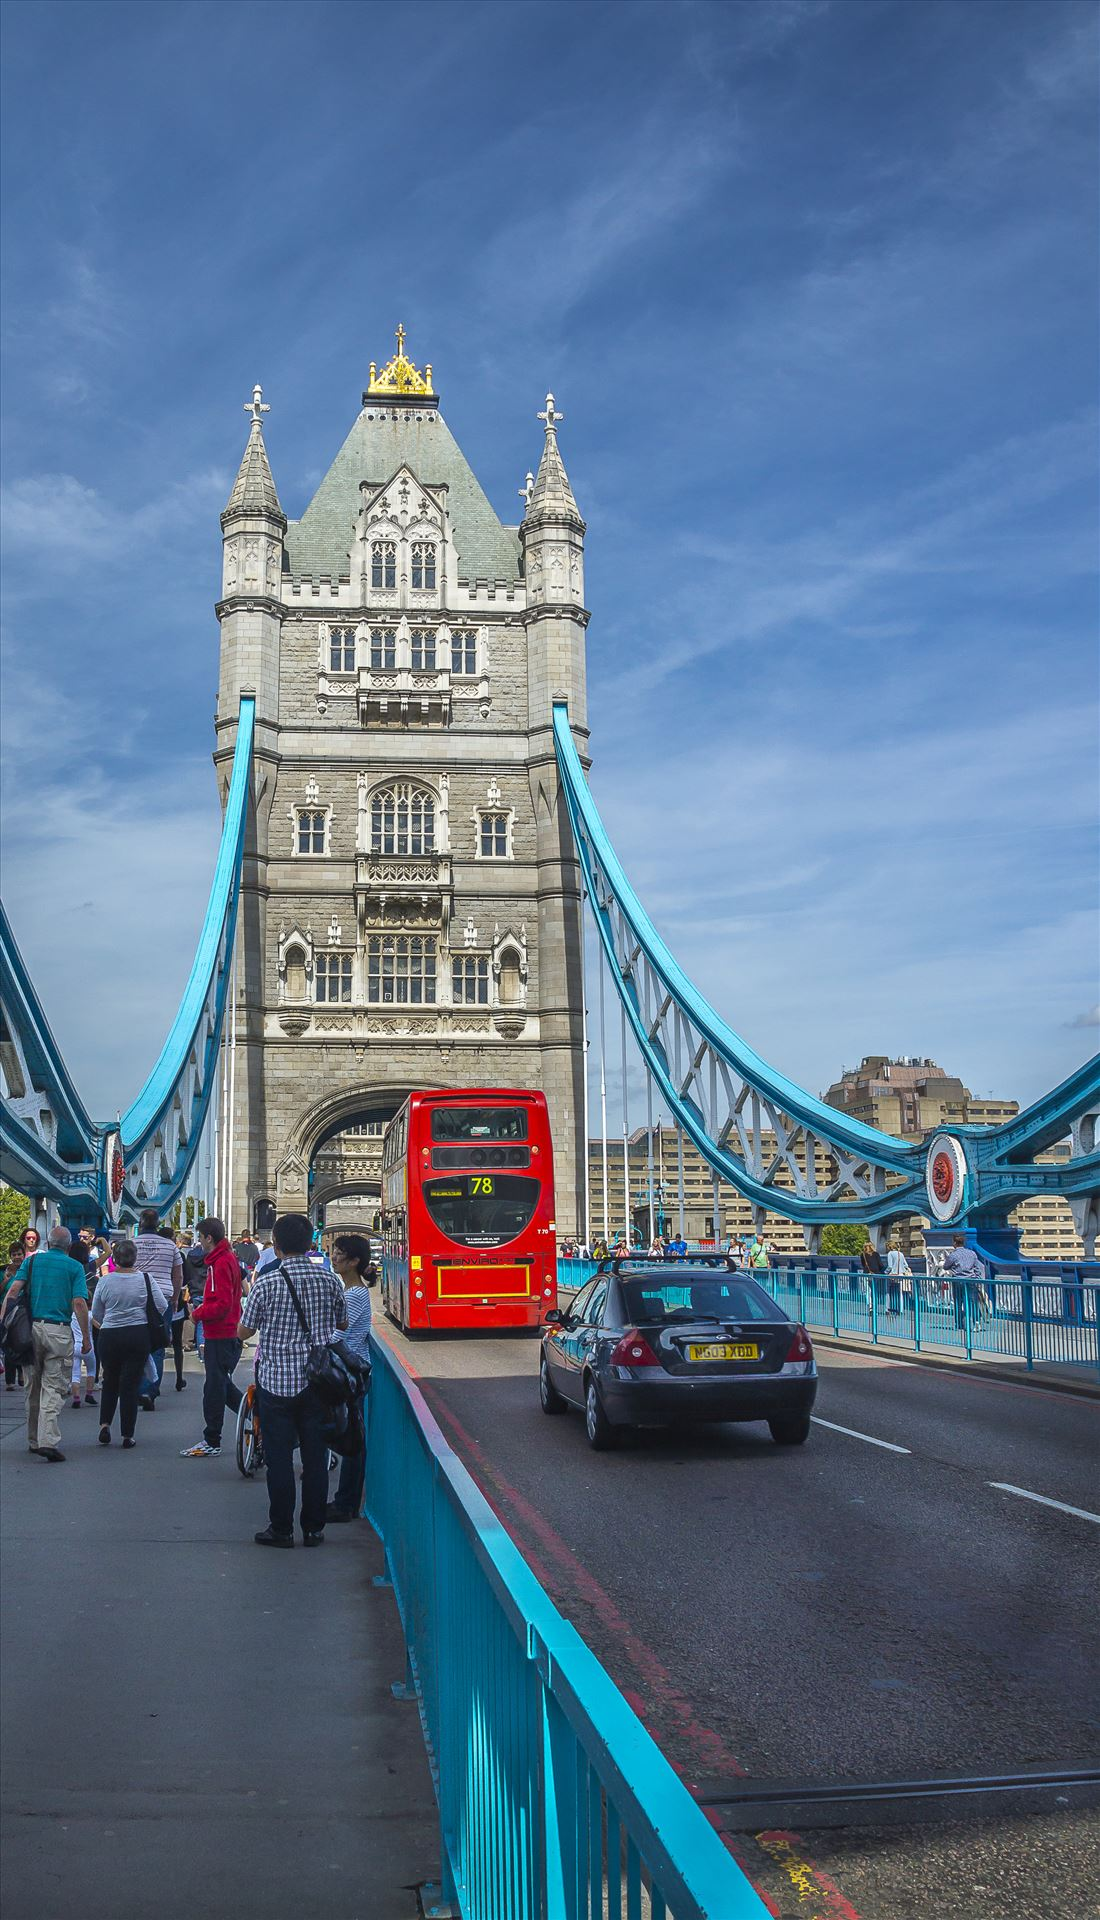 Tower Bridge - With a Double Decker Bus by Buckmaster